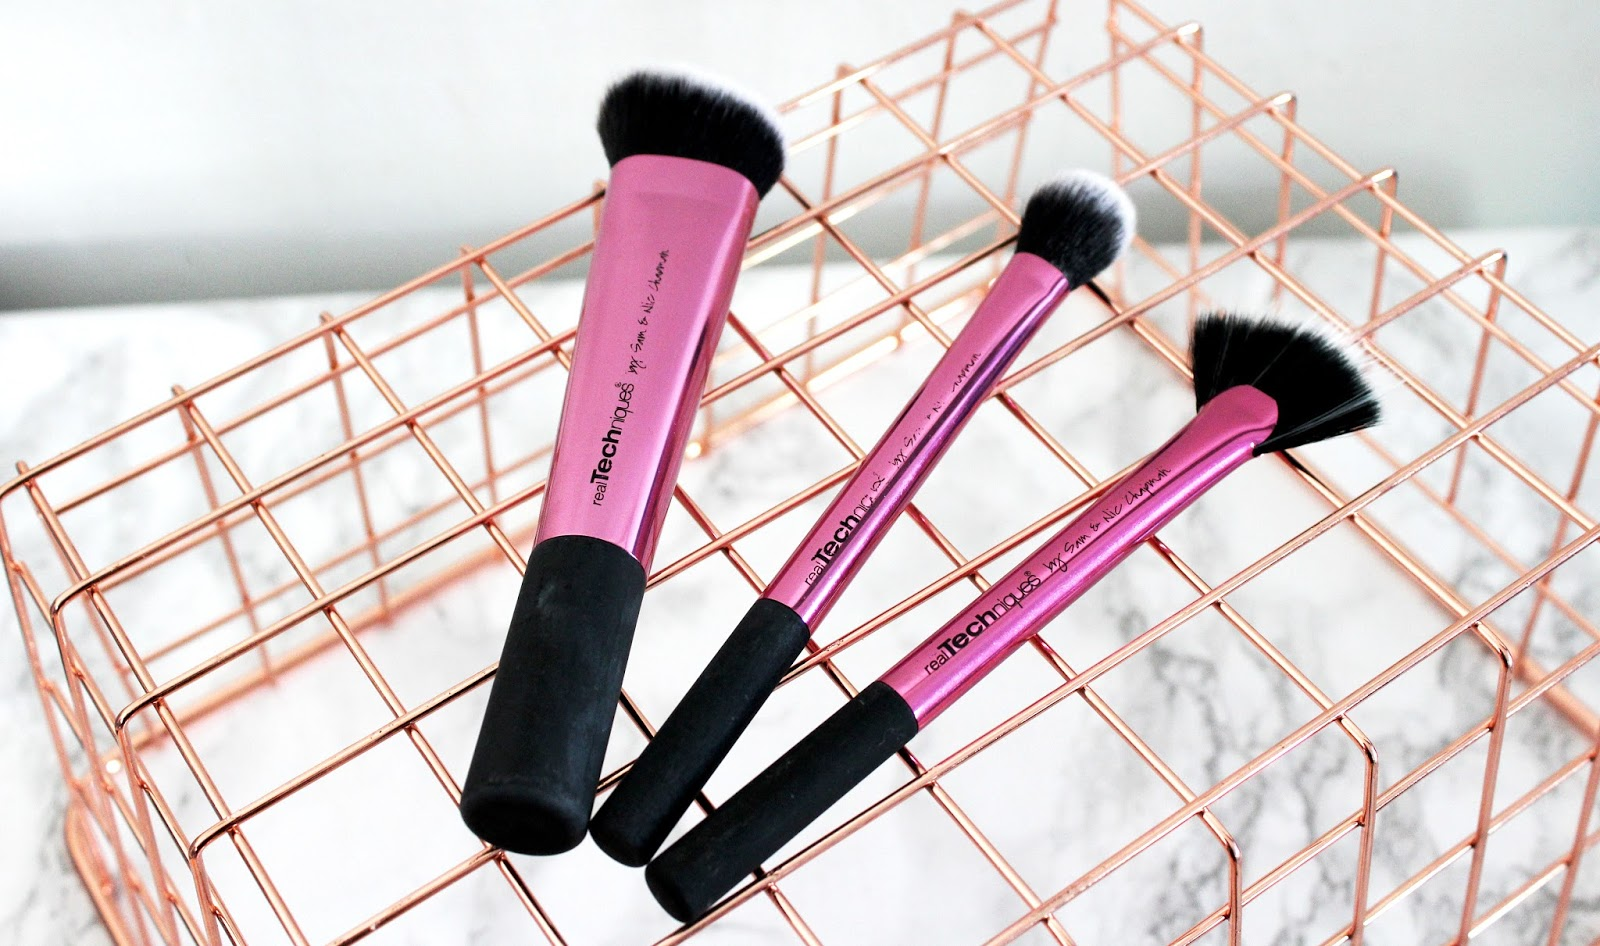 They are super soft and as with the other brushes they are really well made and stand up to washing. These have been washed about 6-8 times and still look ...